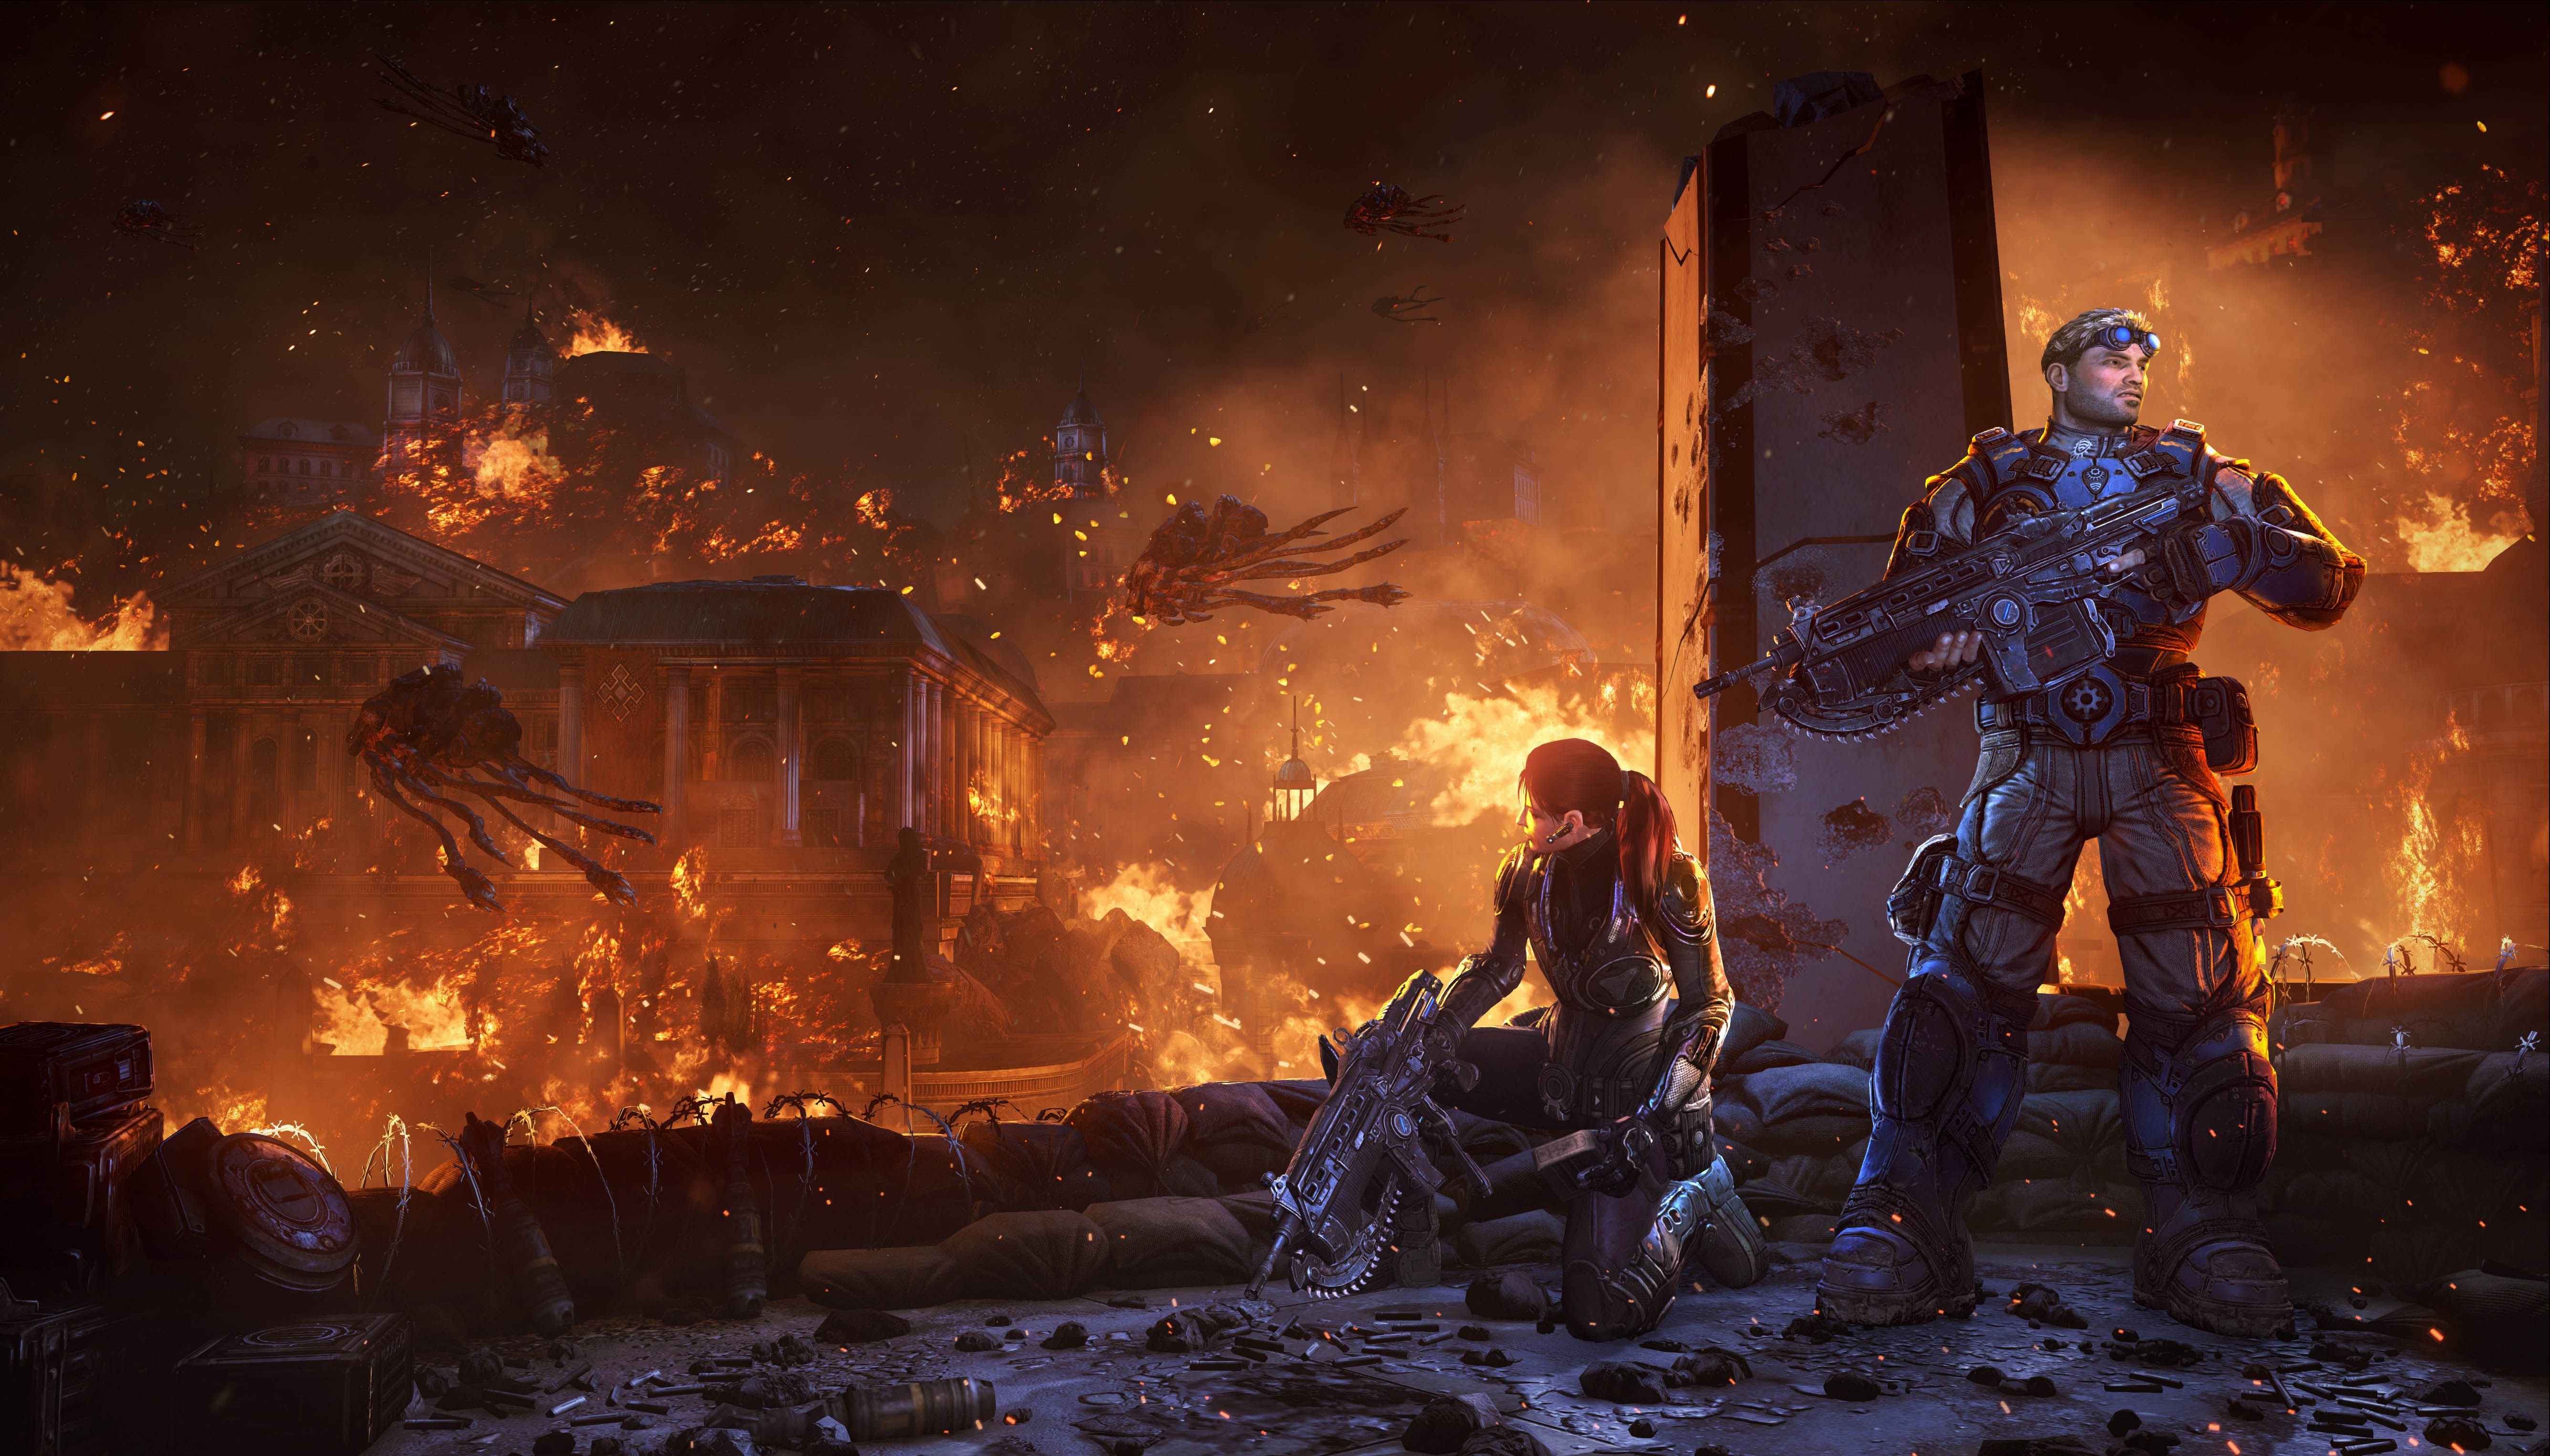 Gears Of War Judgement Is Not Just A Prequel Features Unlockable Aftermath Mini Campaign Gears Of War Gears Of War 3 Gears Of War Judgment